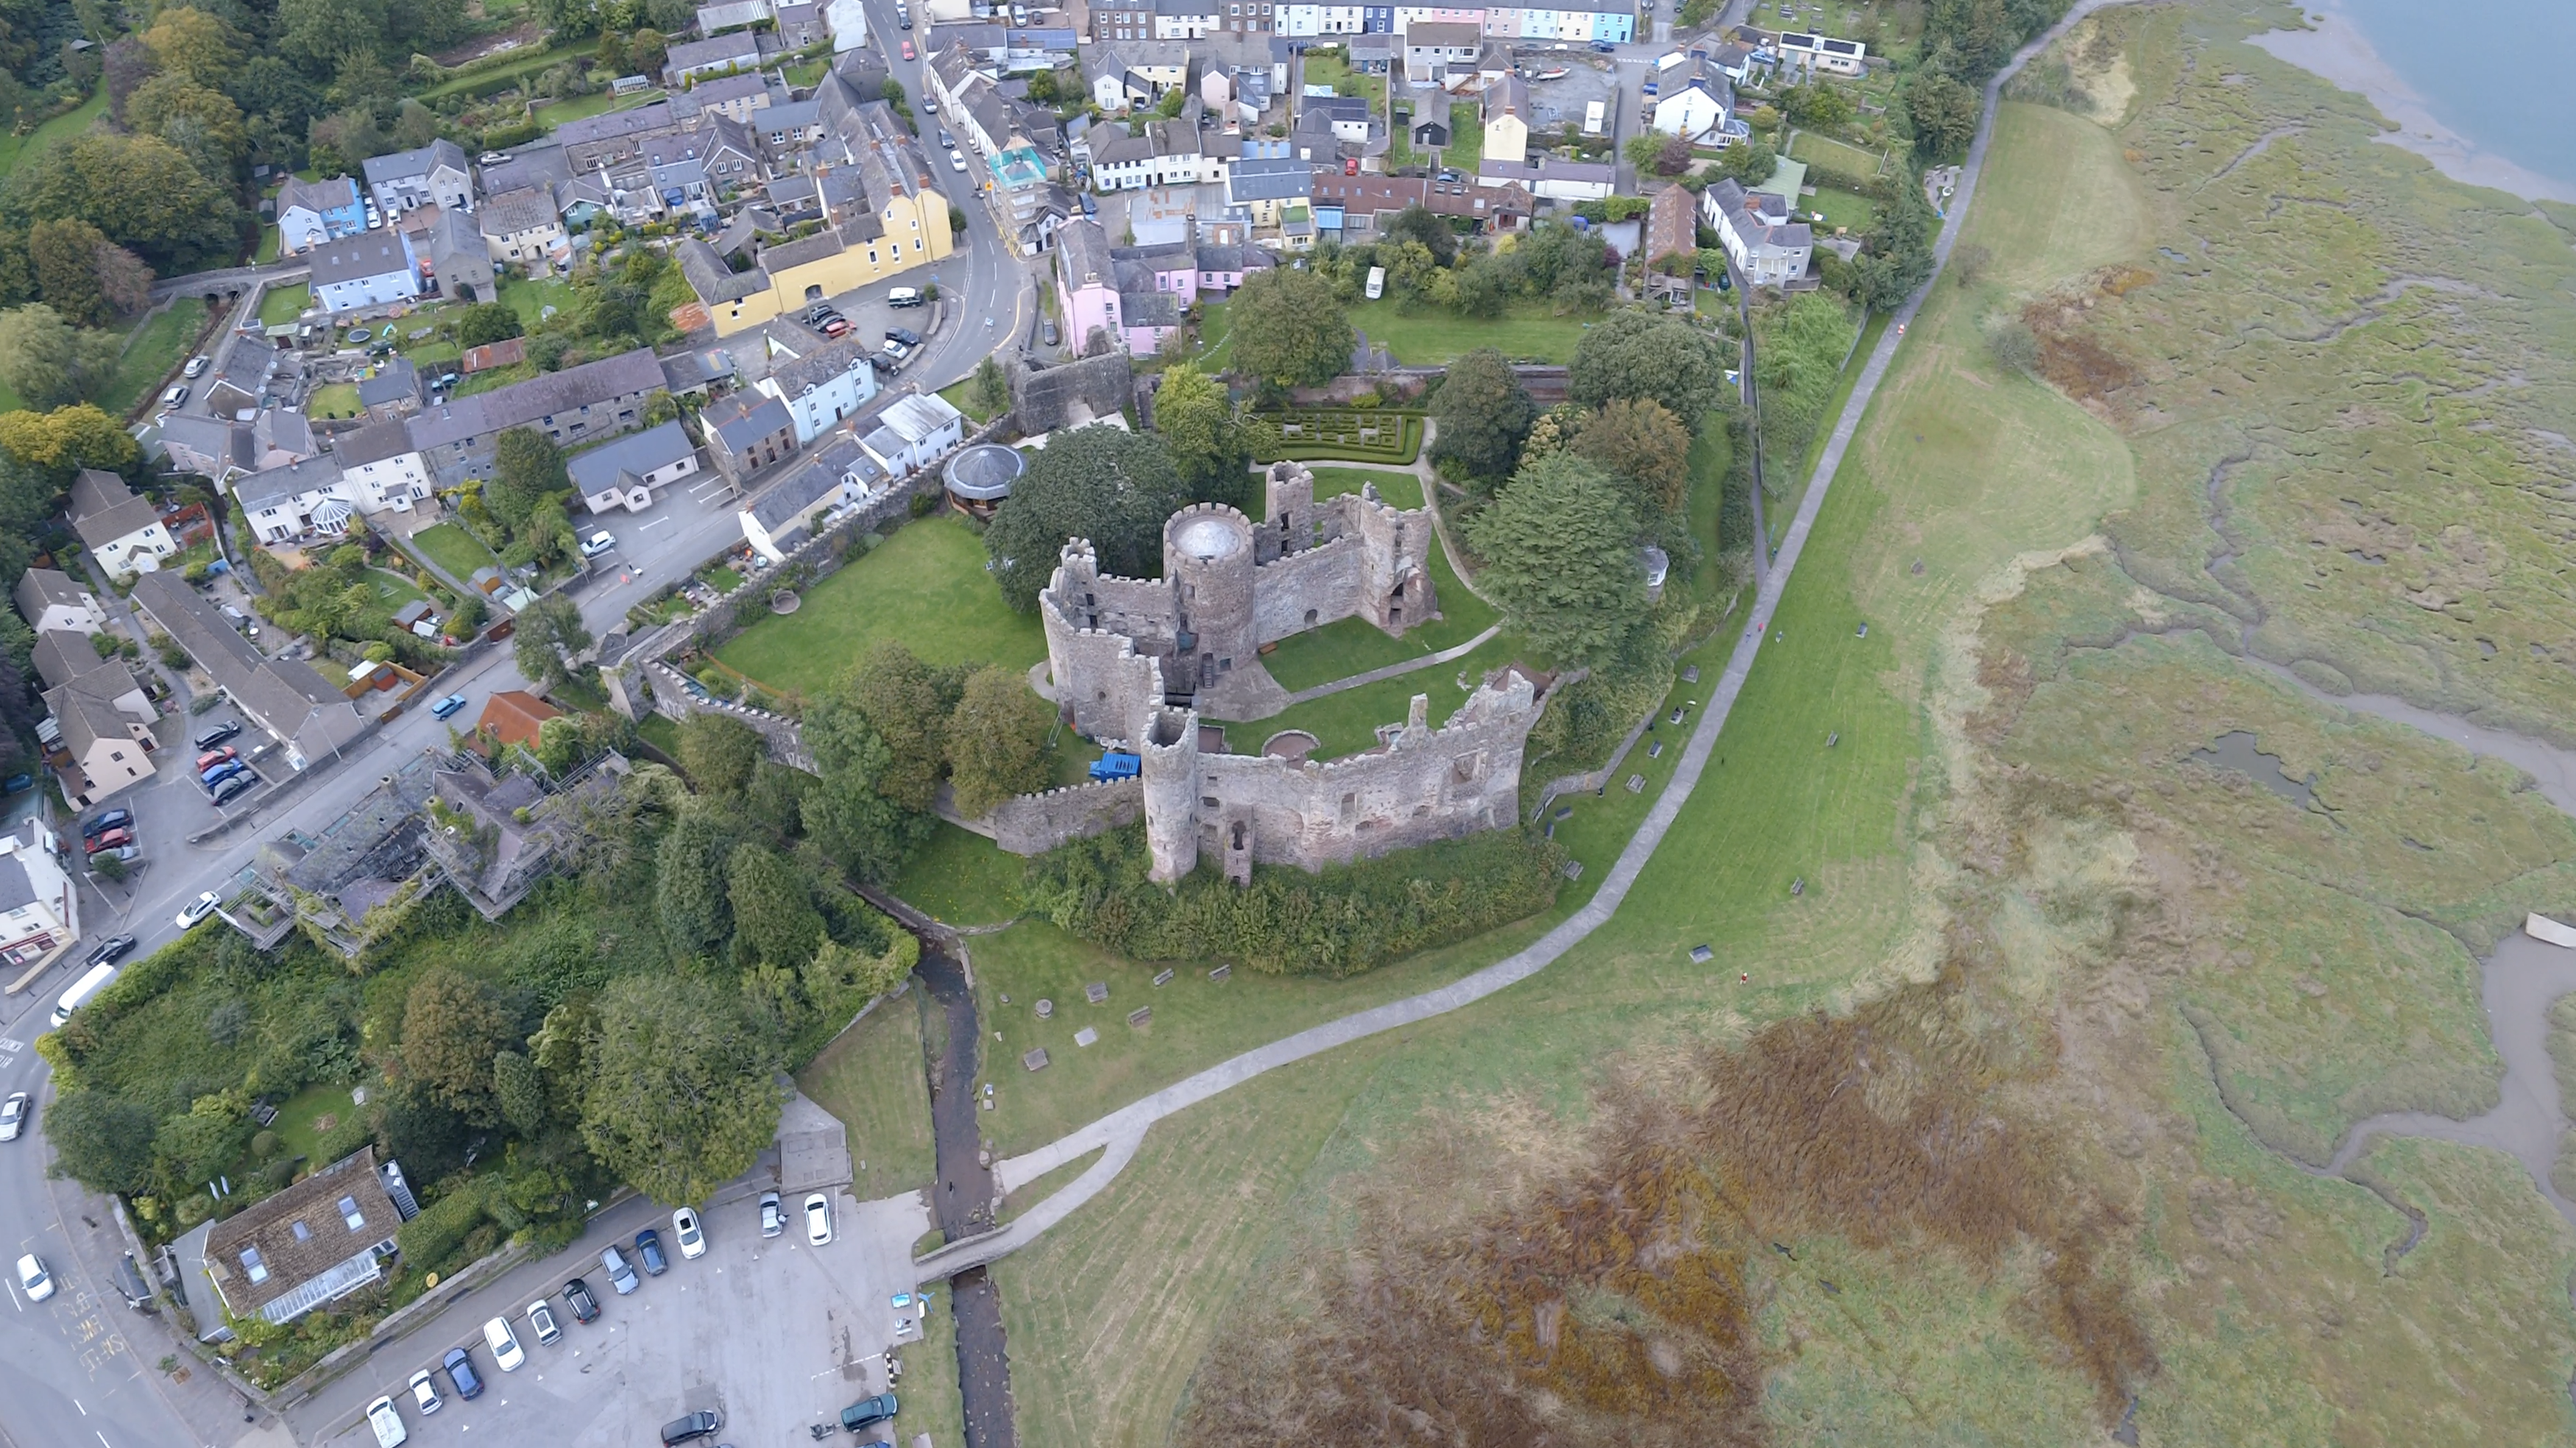 Island House & Laugharne Castle Aerial View